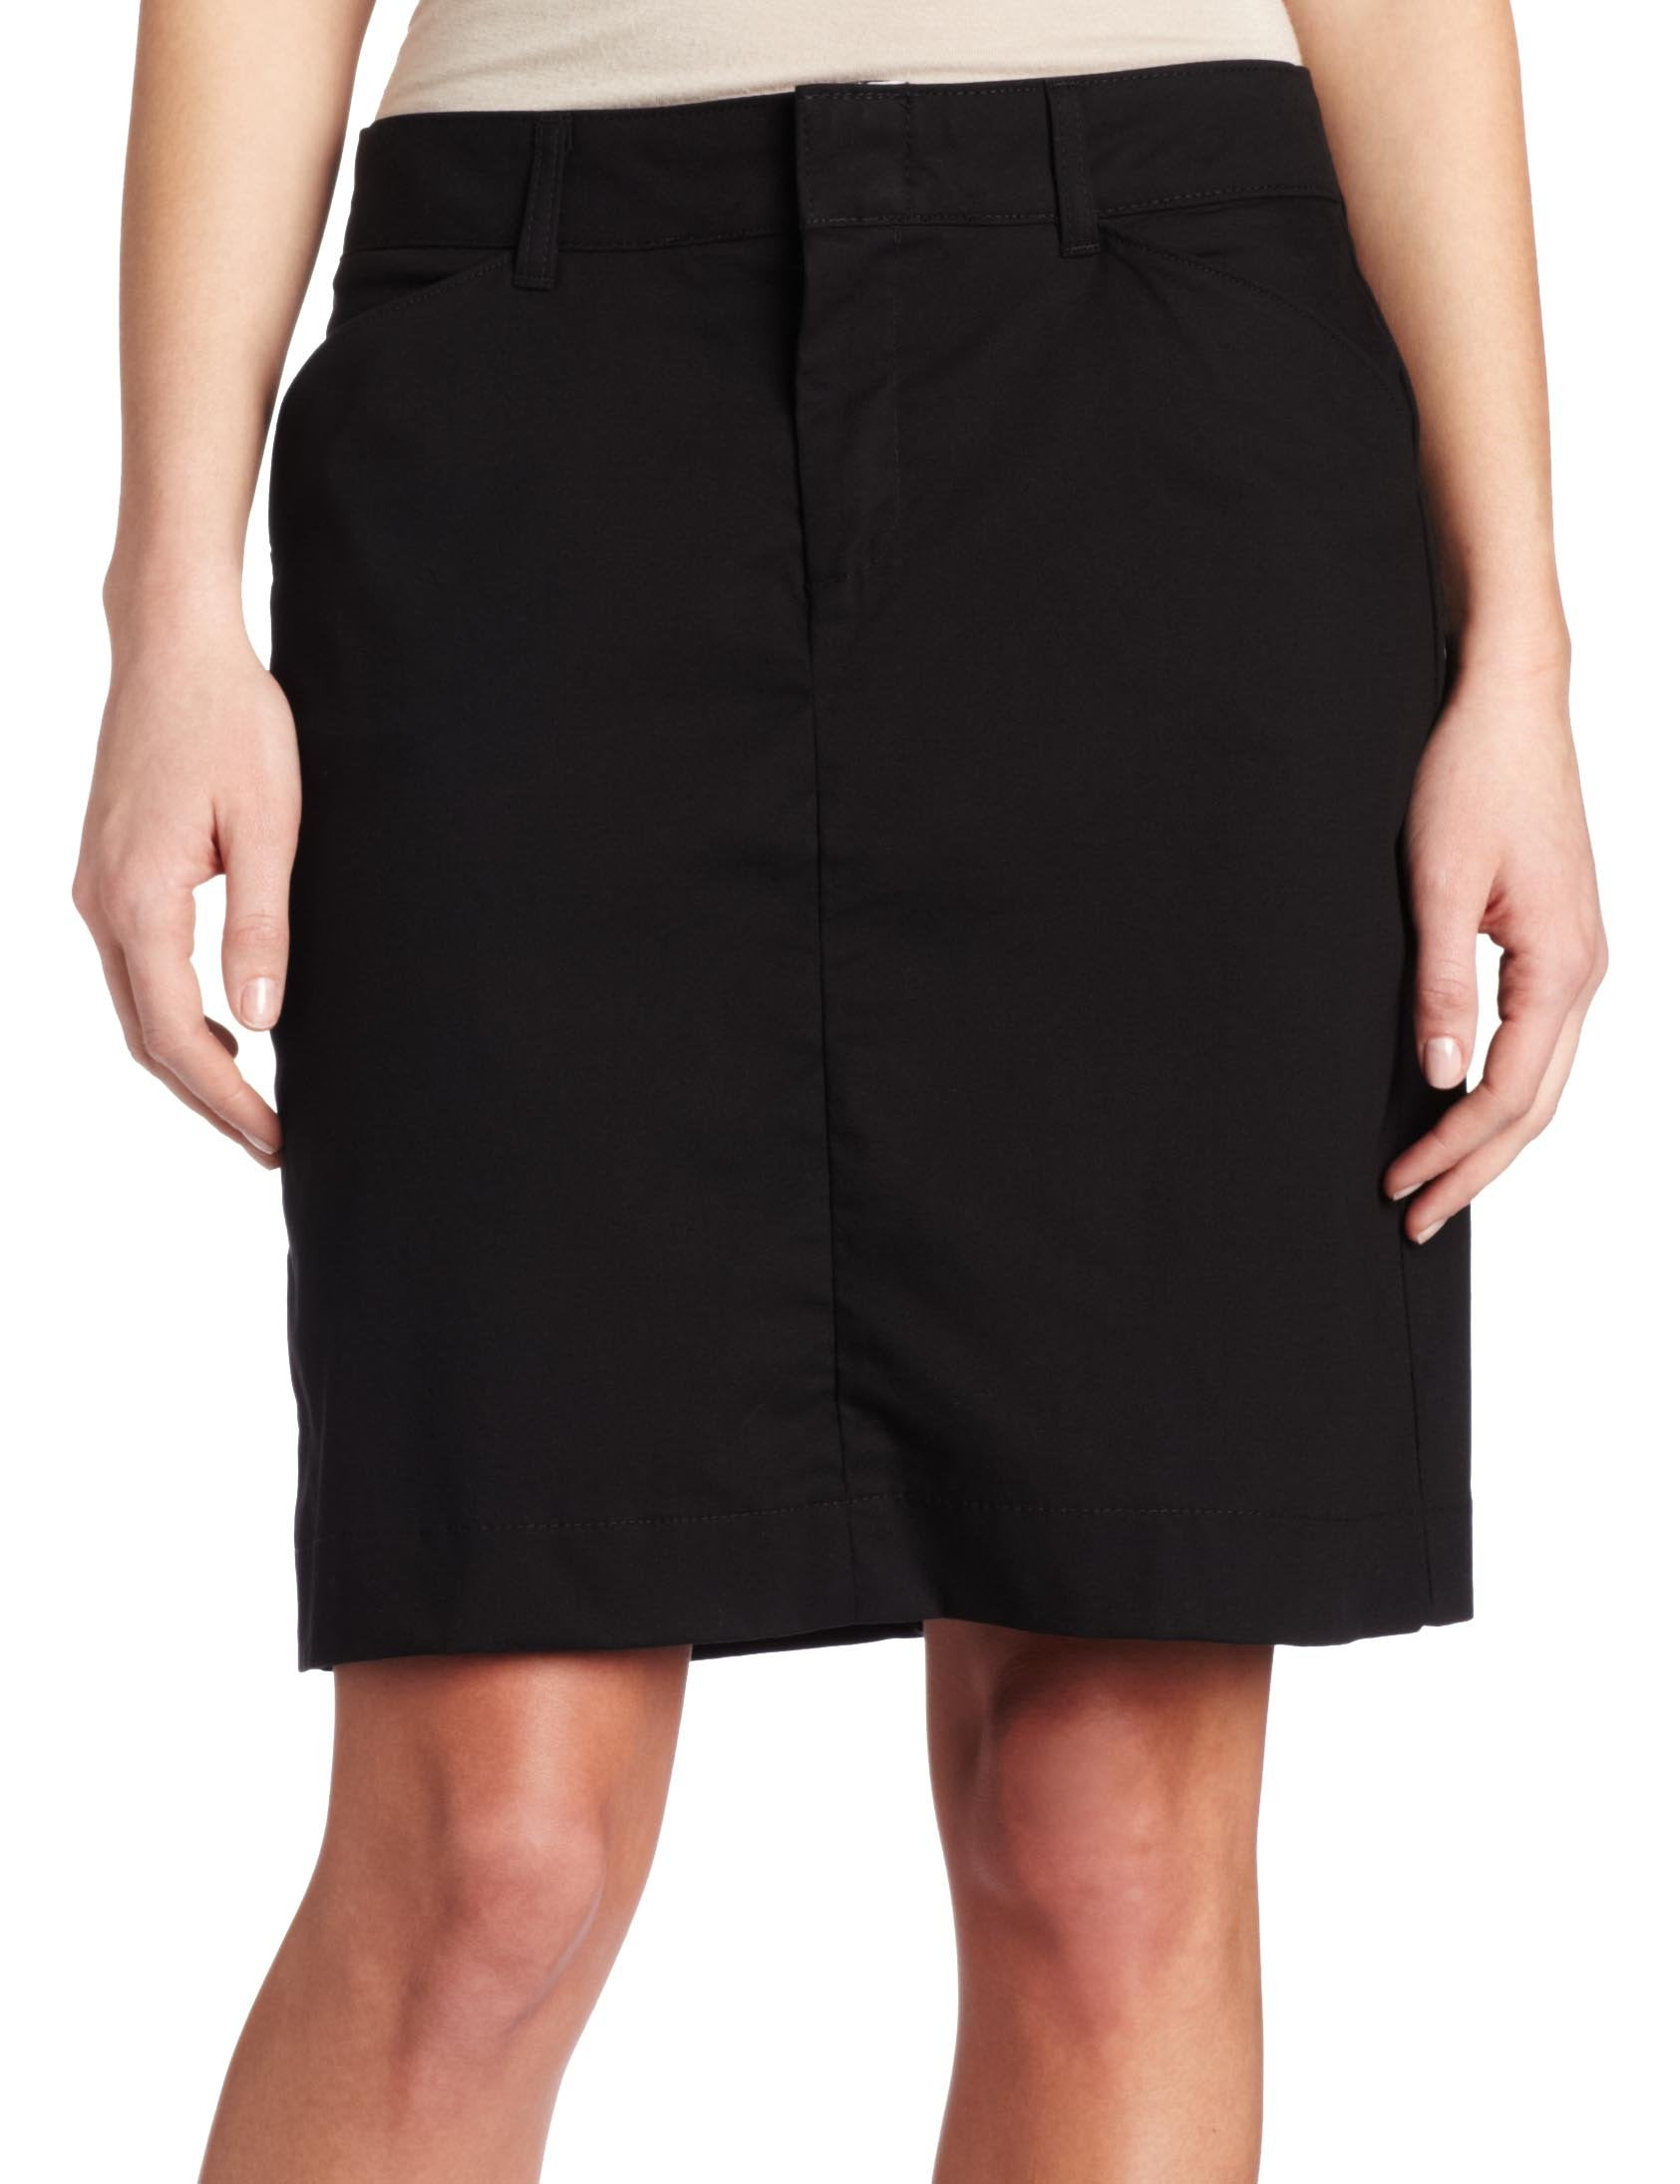 Dickies Women's 20 Inch Stretch Twill Skirt, Black, 10